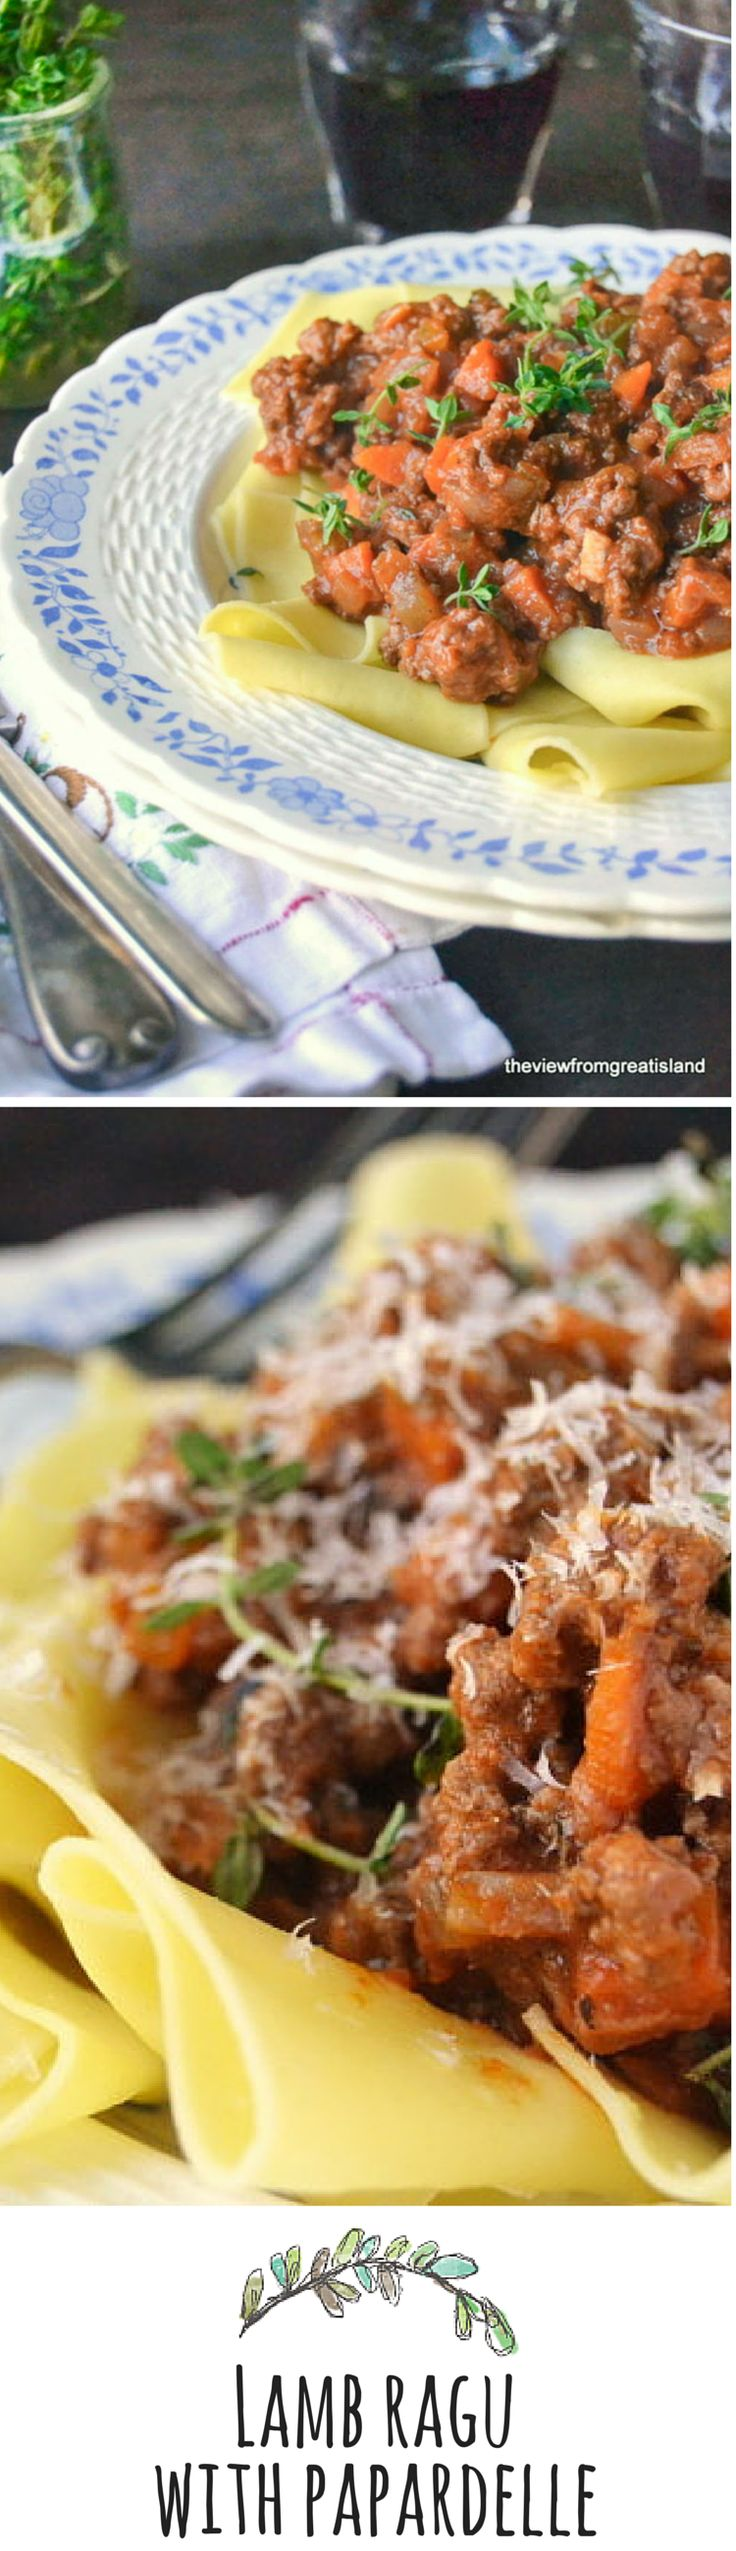 A super hearty classic lamb ragu with broad noodles makes a comforting (and romantic!) dinner.